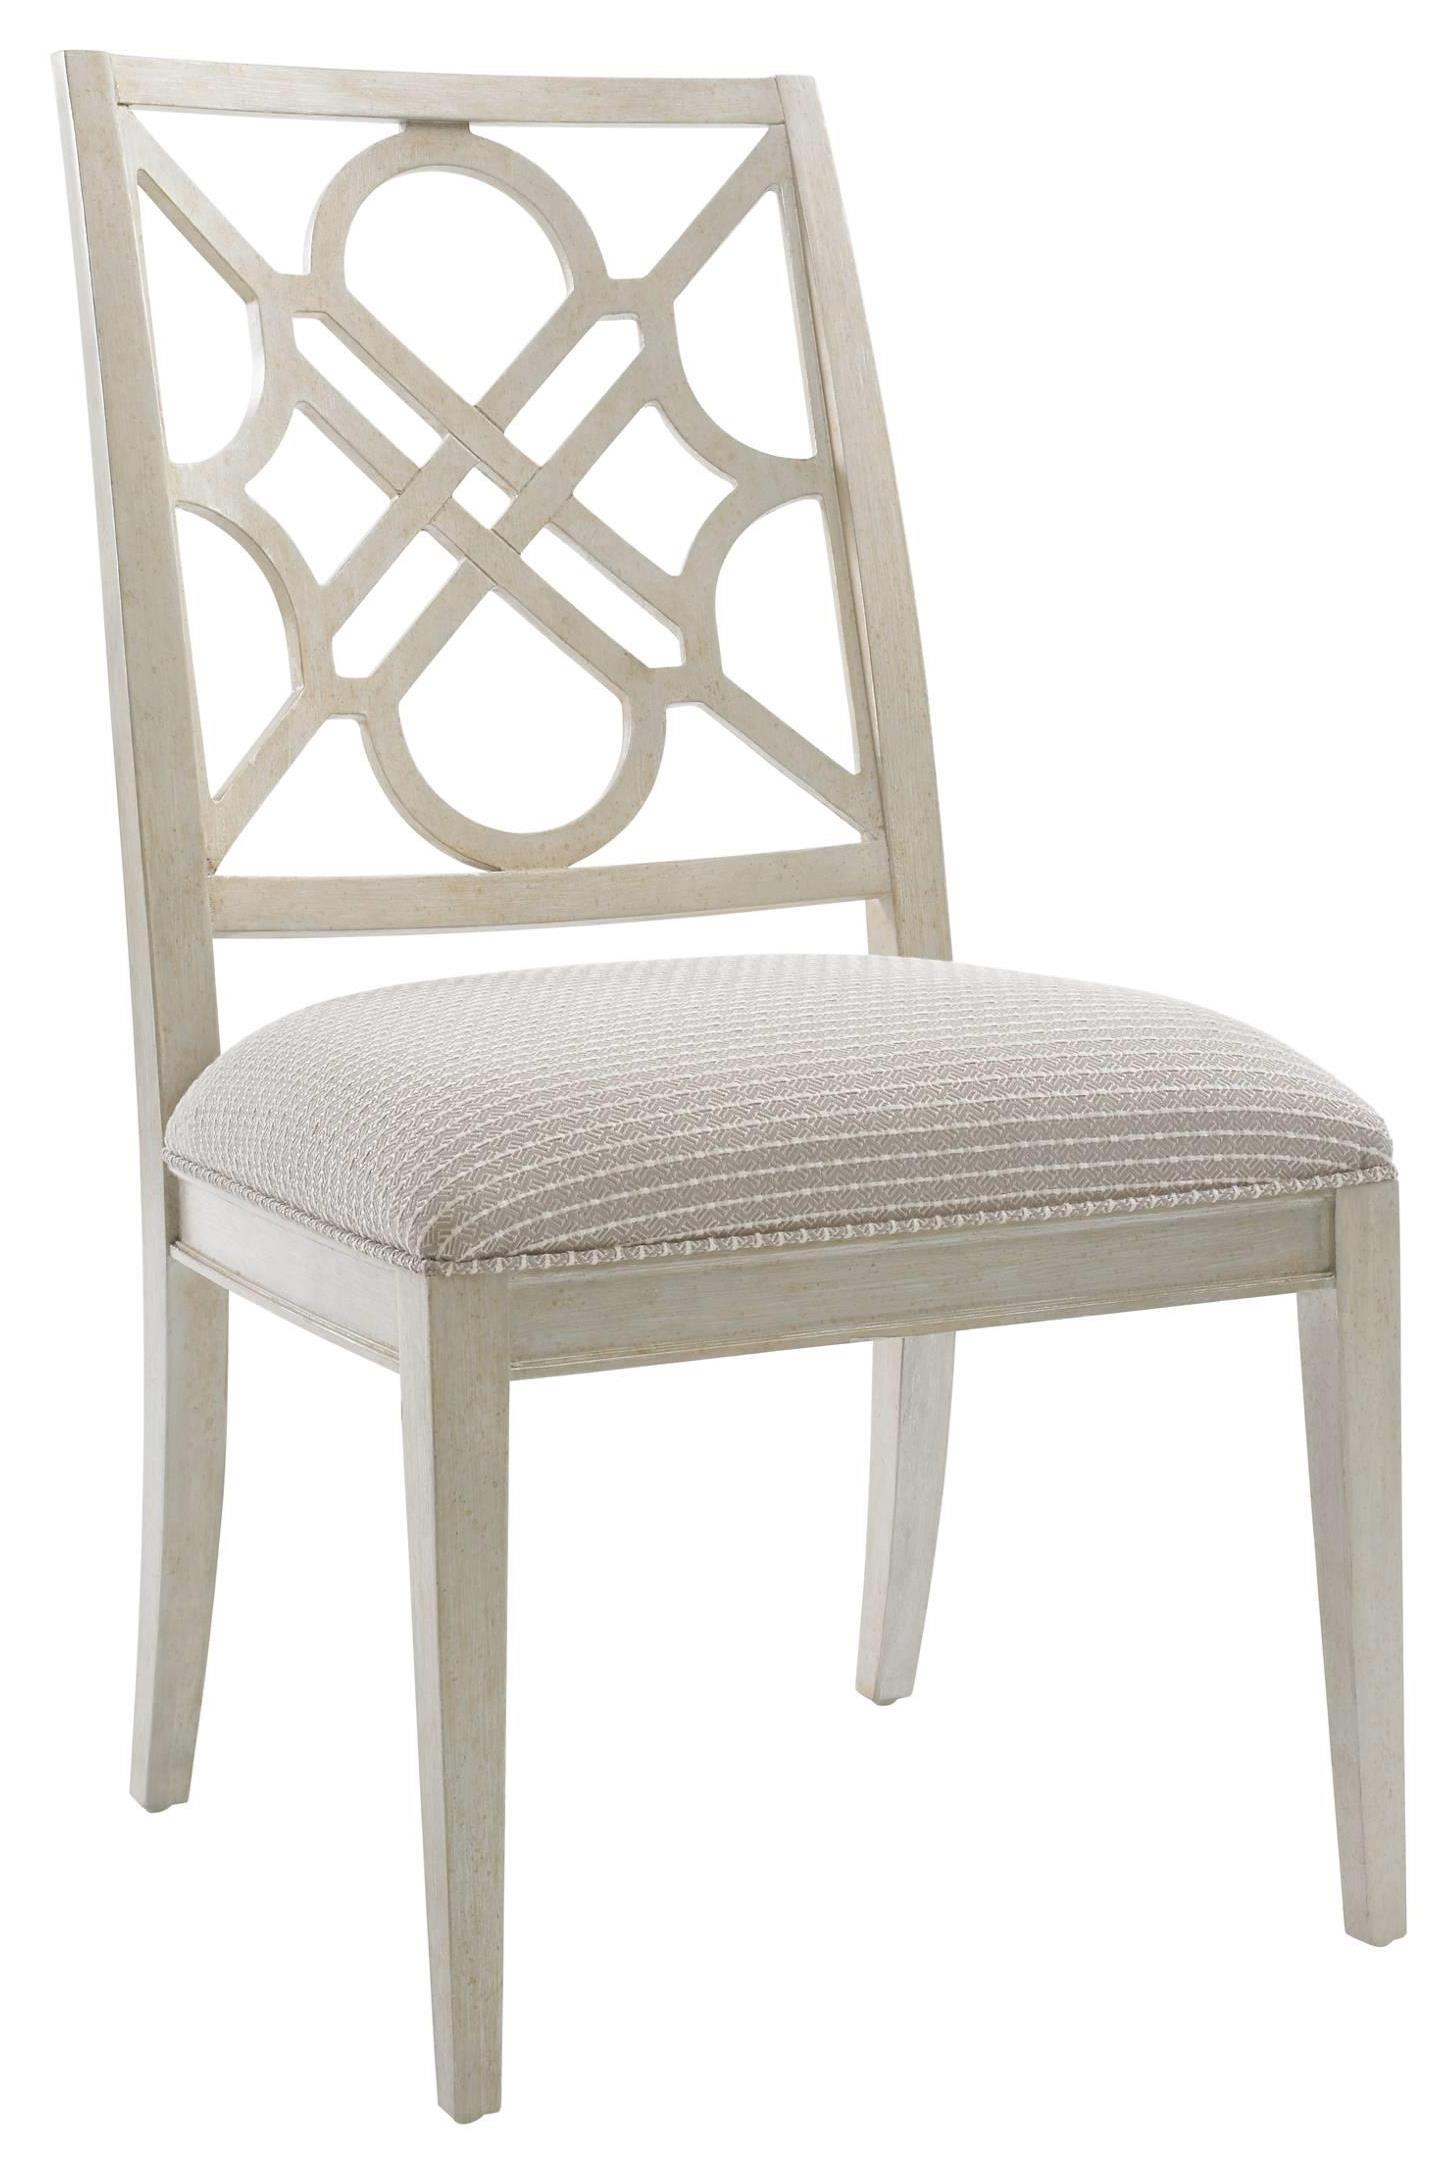 Stanley Furniture Fairlane Wood Side Chair - Item Number: 417-21-60